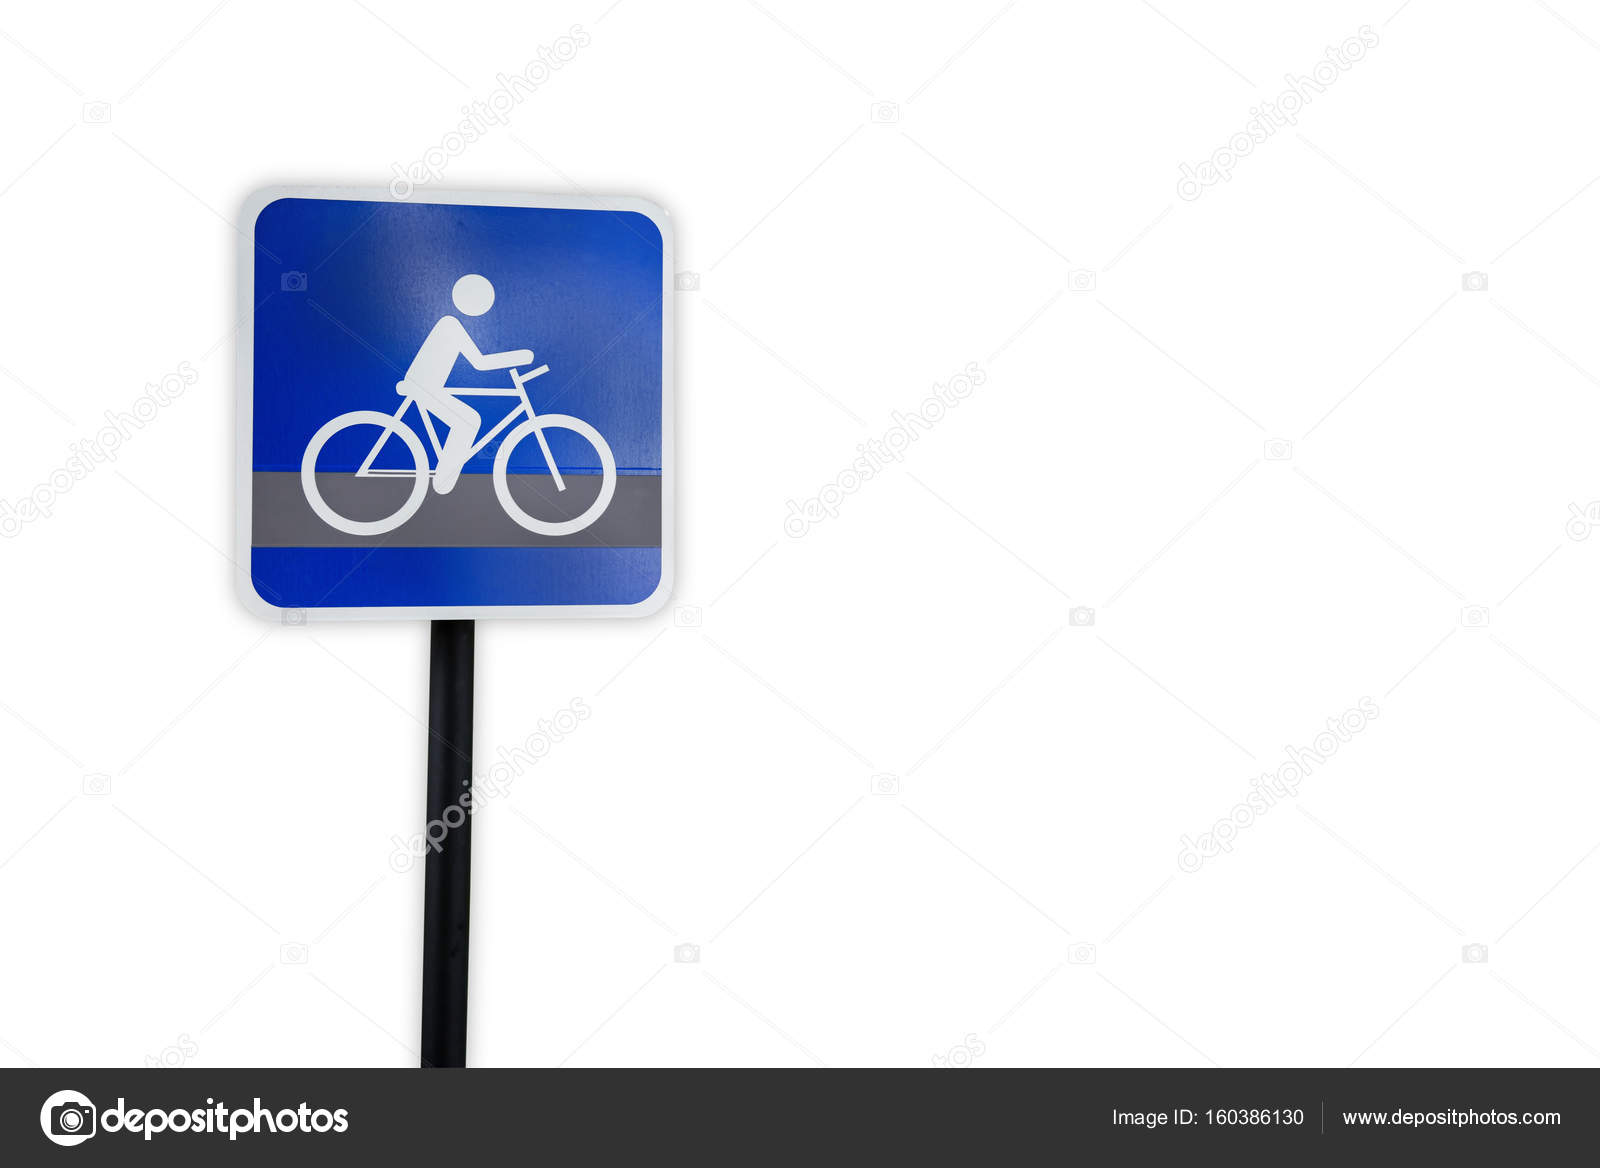 Bike route traffic sign template isolated on white background ...